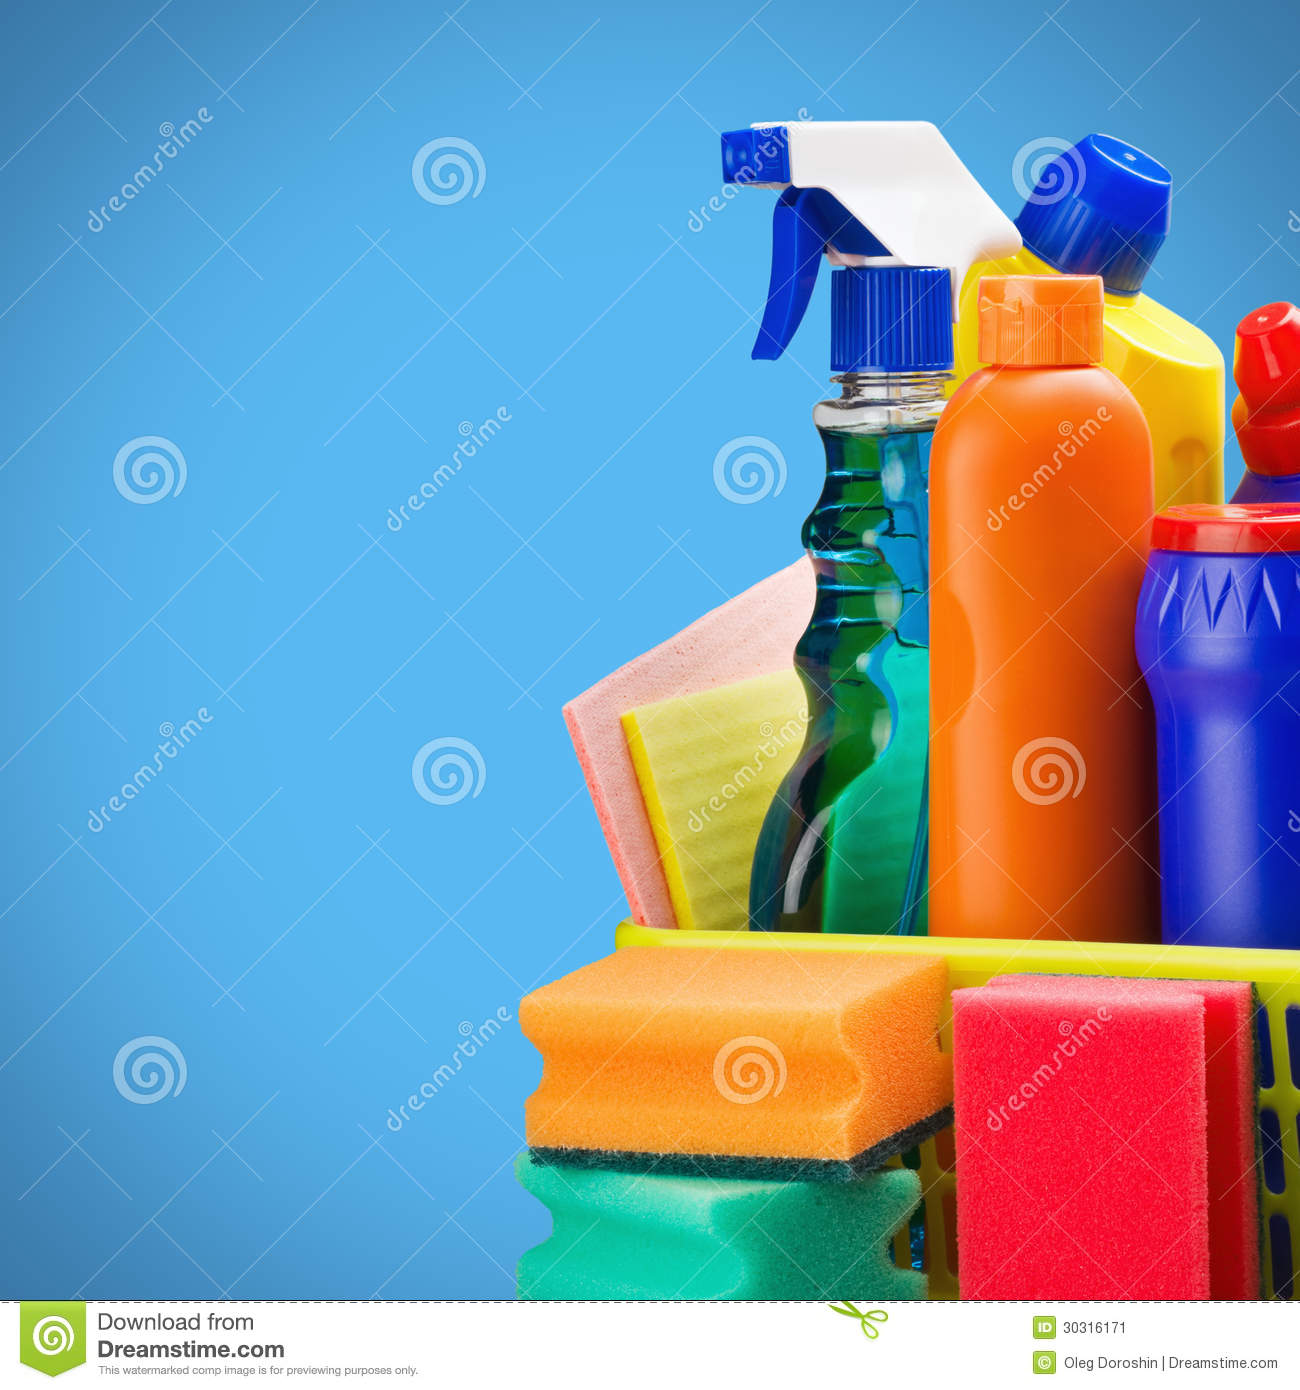 Image Result For Green Household Cleaners